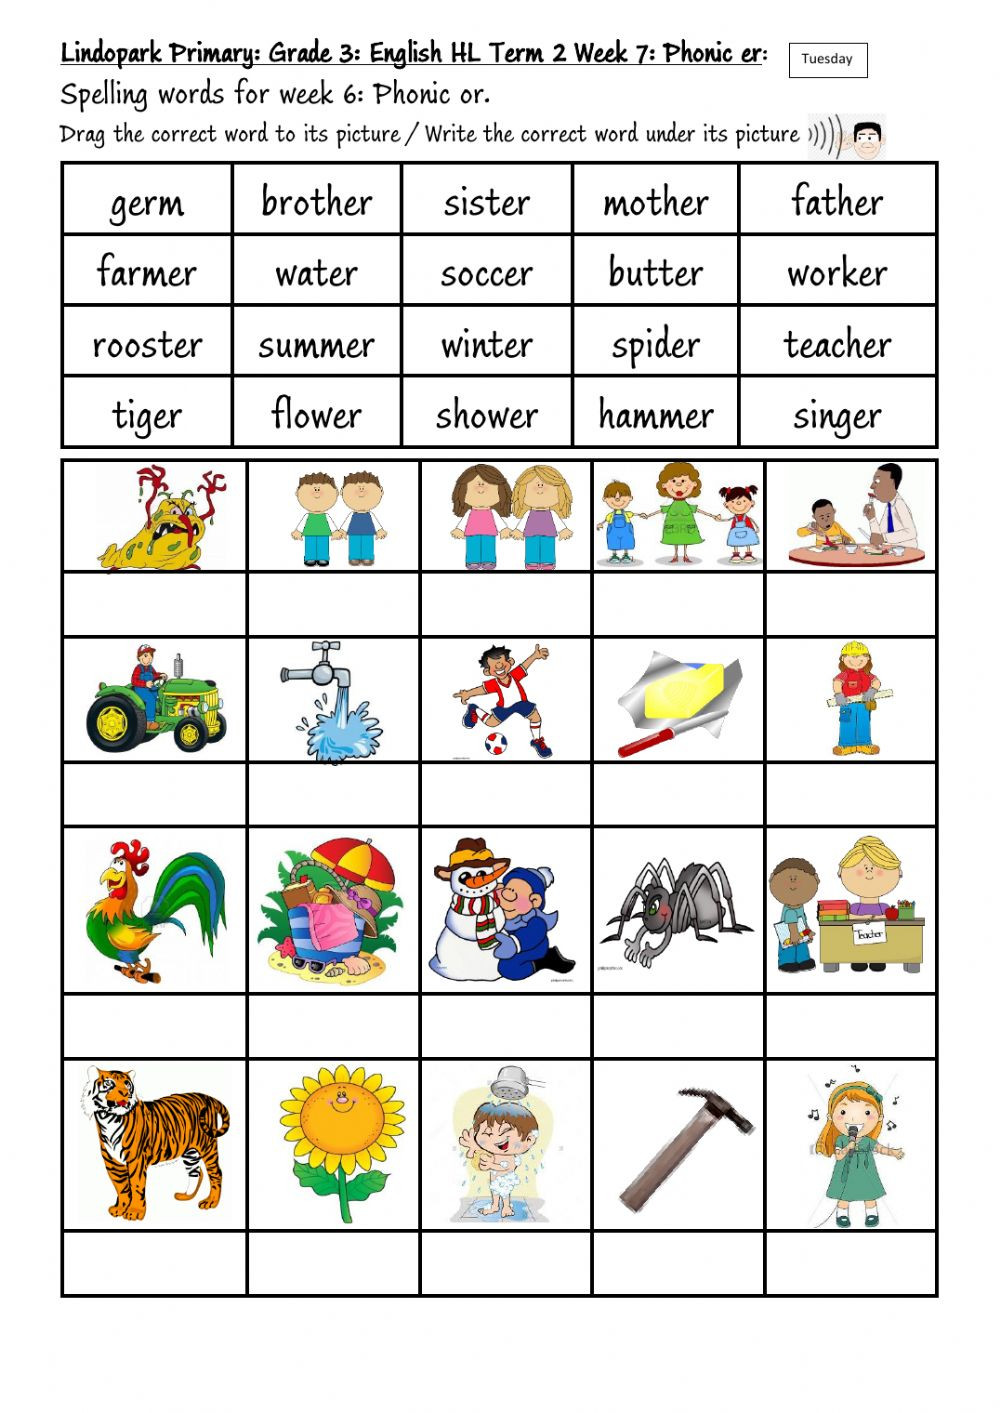 Phonics Worksheets Grade 3 Grade 3 Term 2 Week 7 English Phonic Er Tuesday